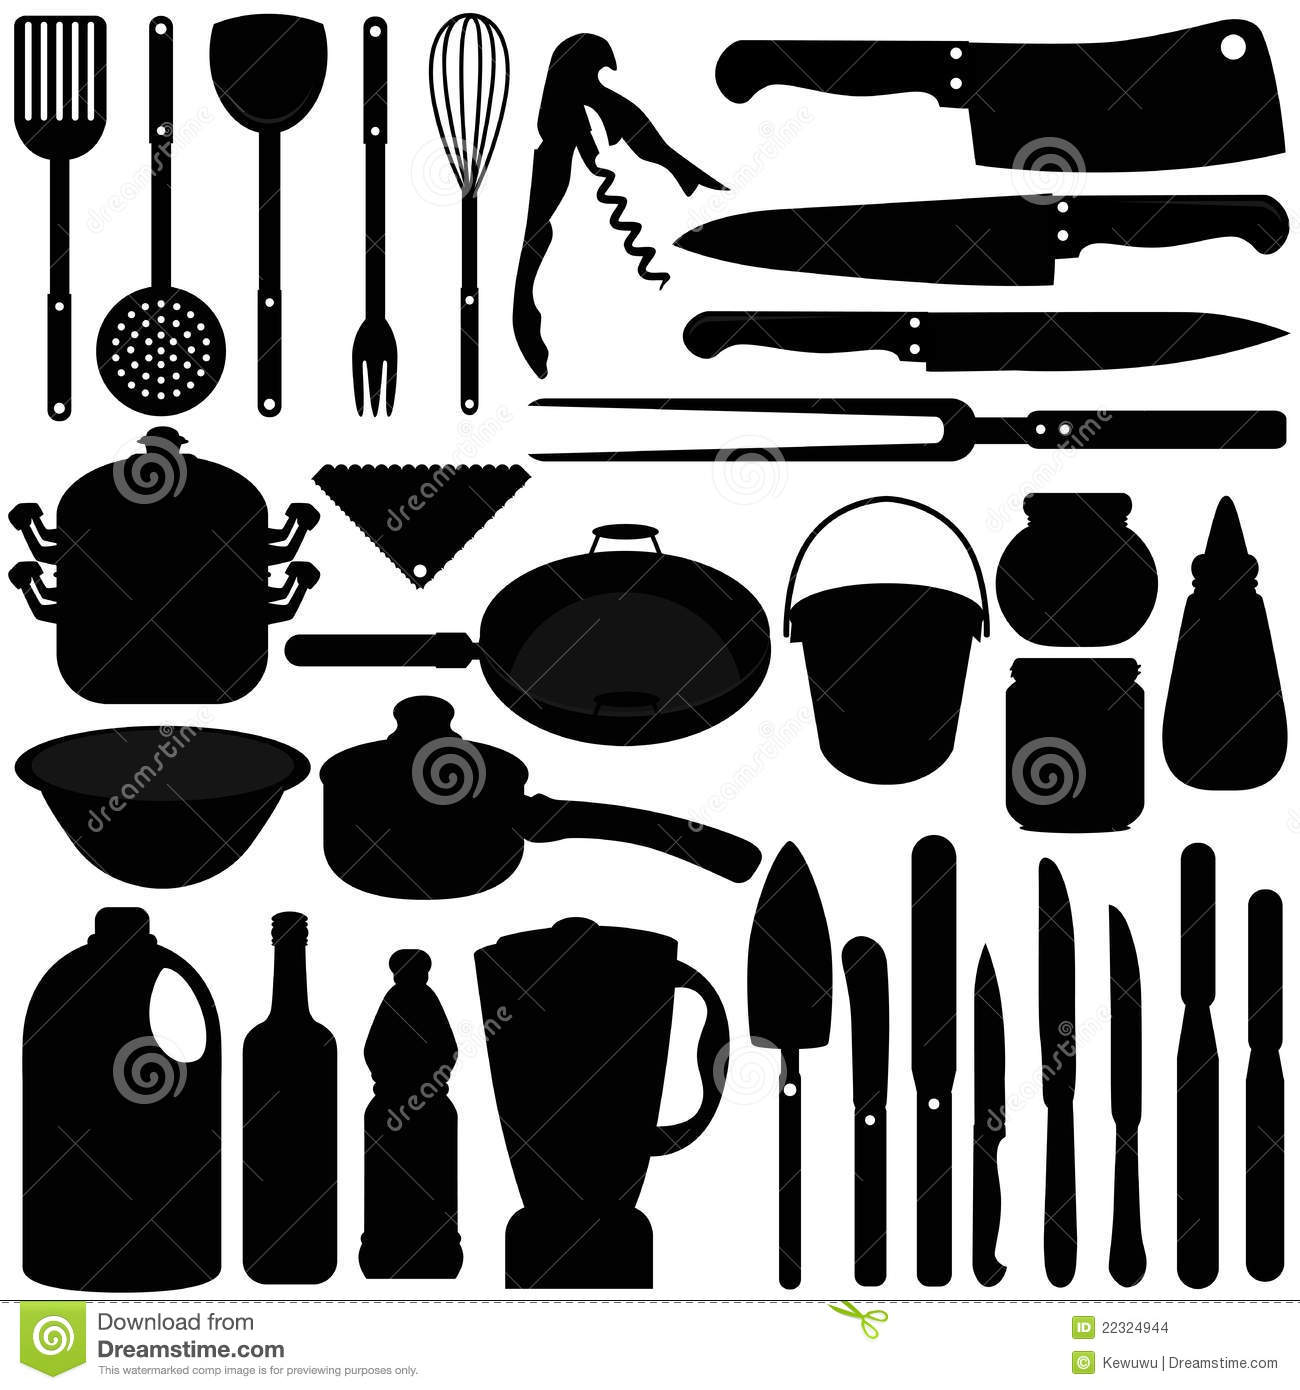 Cooking Utensil, Knives, Baking Equipments Stock Images - Image